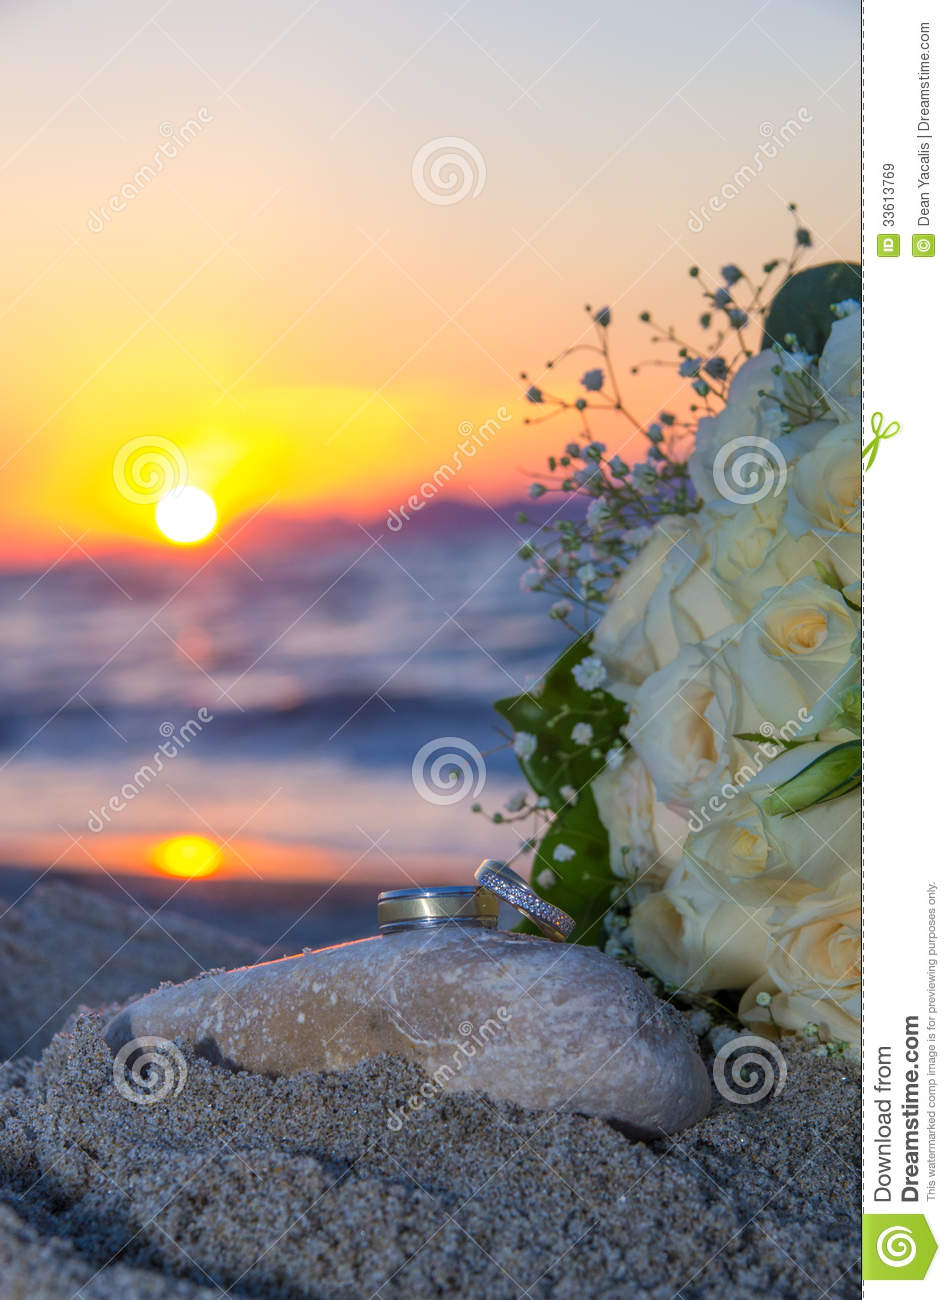 Rose Bouquet And Rings At Sunset Stock Image - Image: 33613769